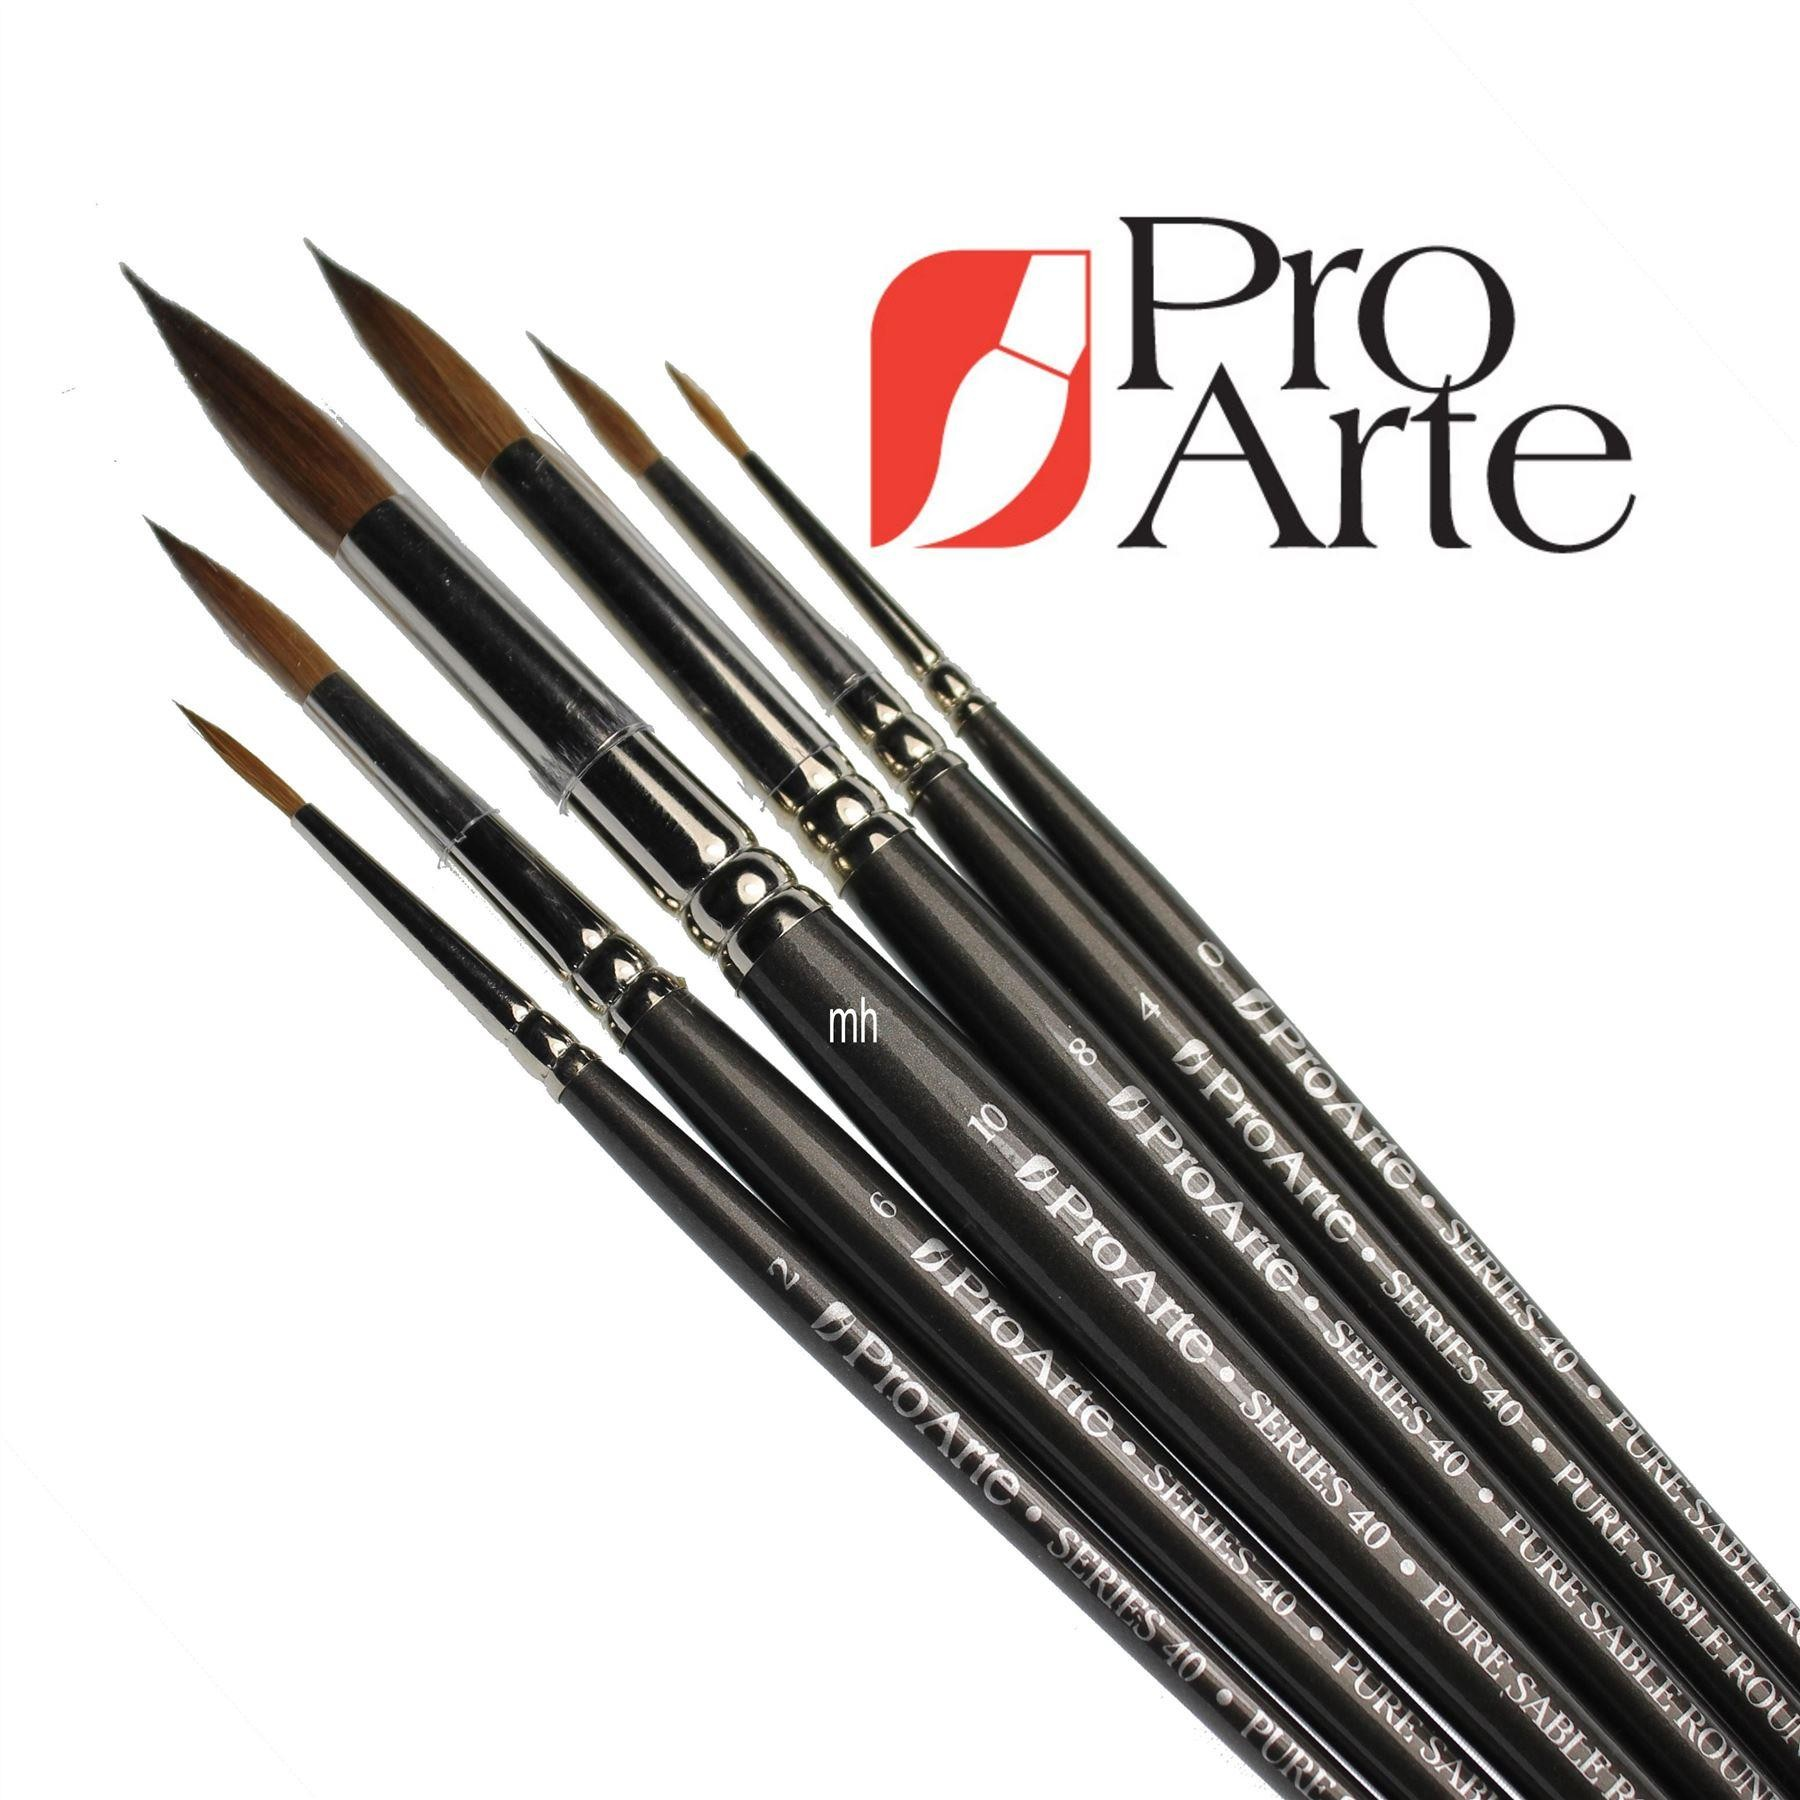 Pro Arte Series 40 Sable Brush Wallet set of 6 watercolour brushes